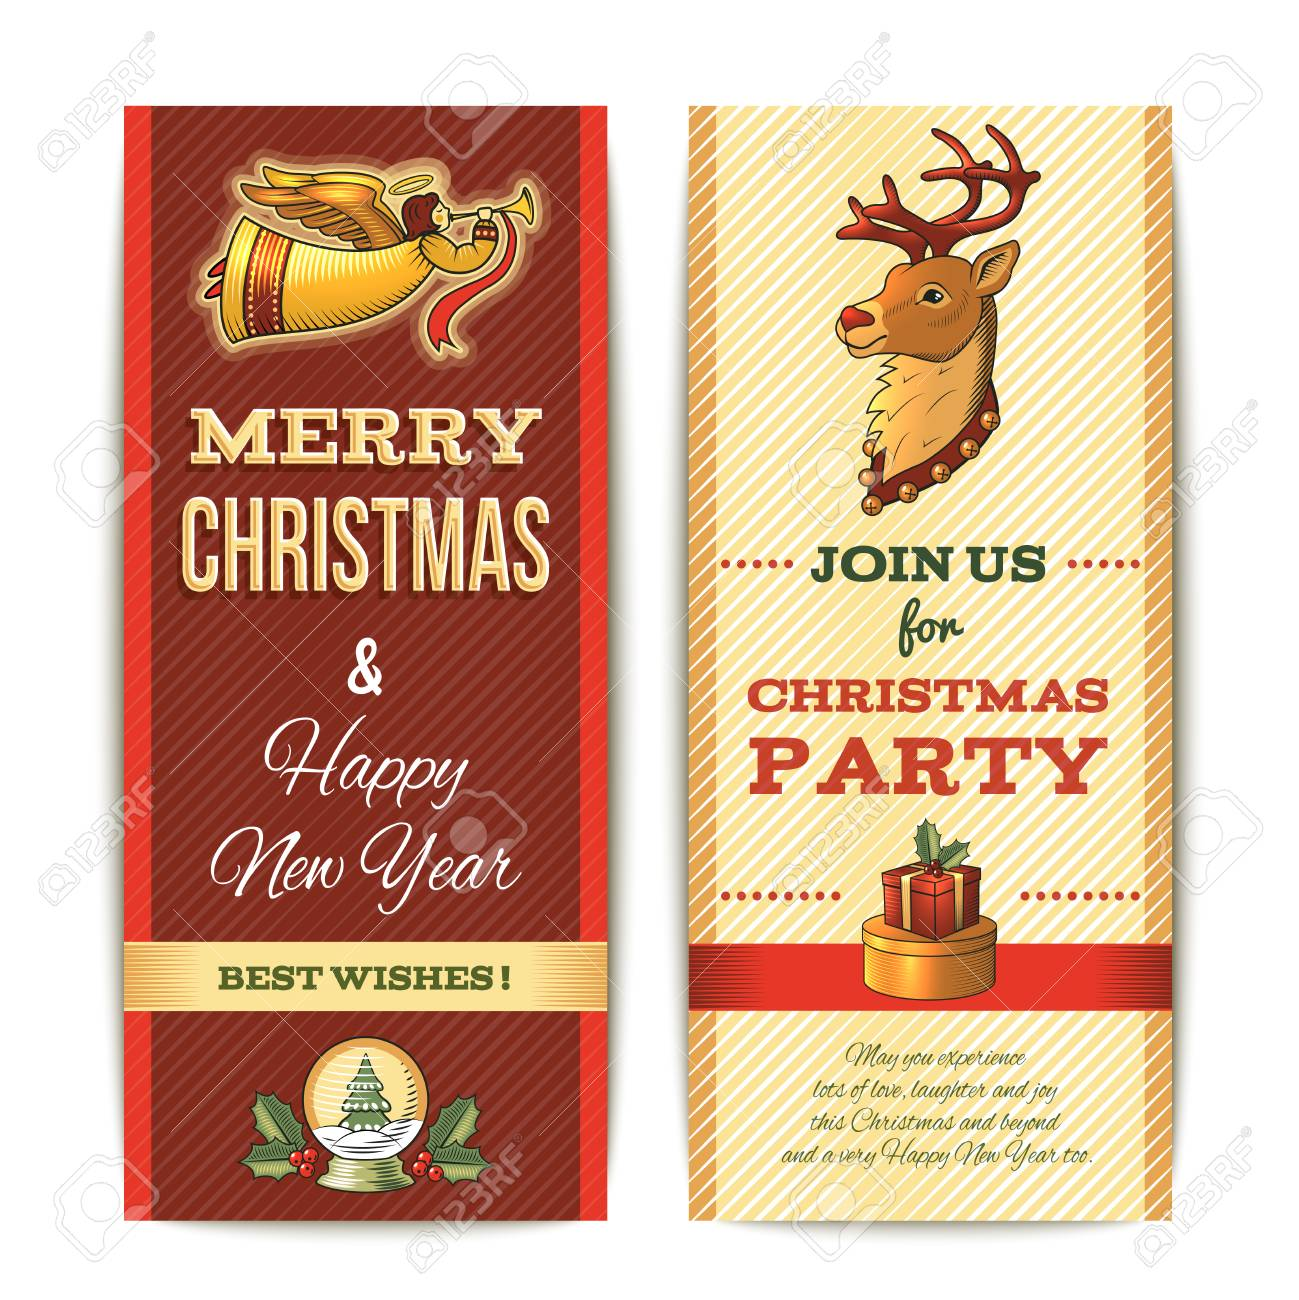 merry christmas and happy new year vertical banner set isolated illustration stock vector 32944890